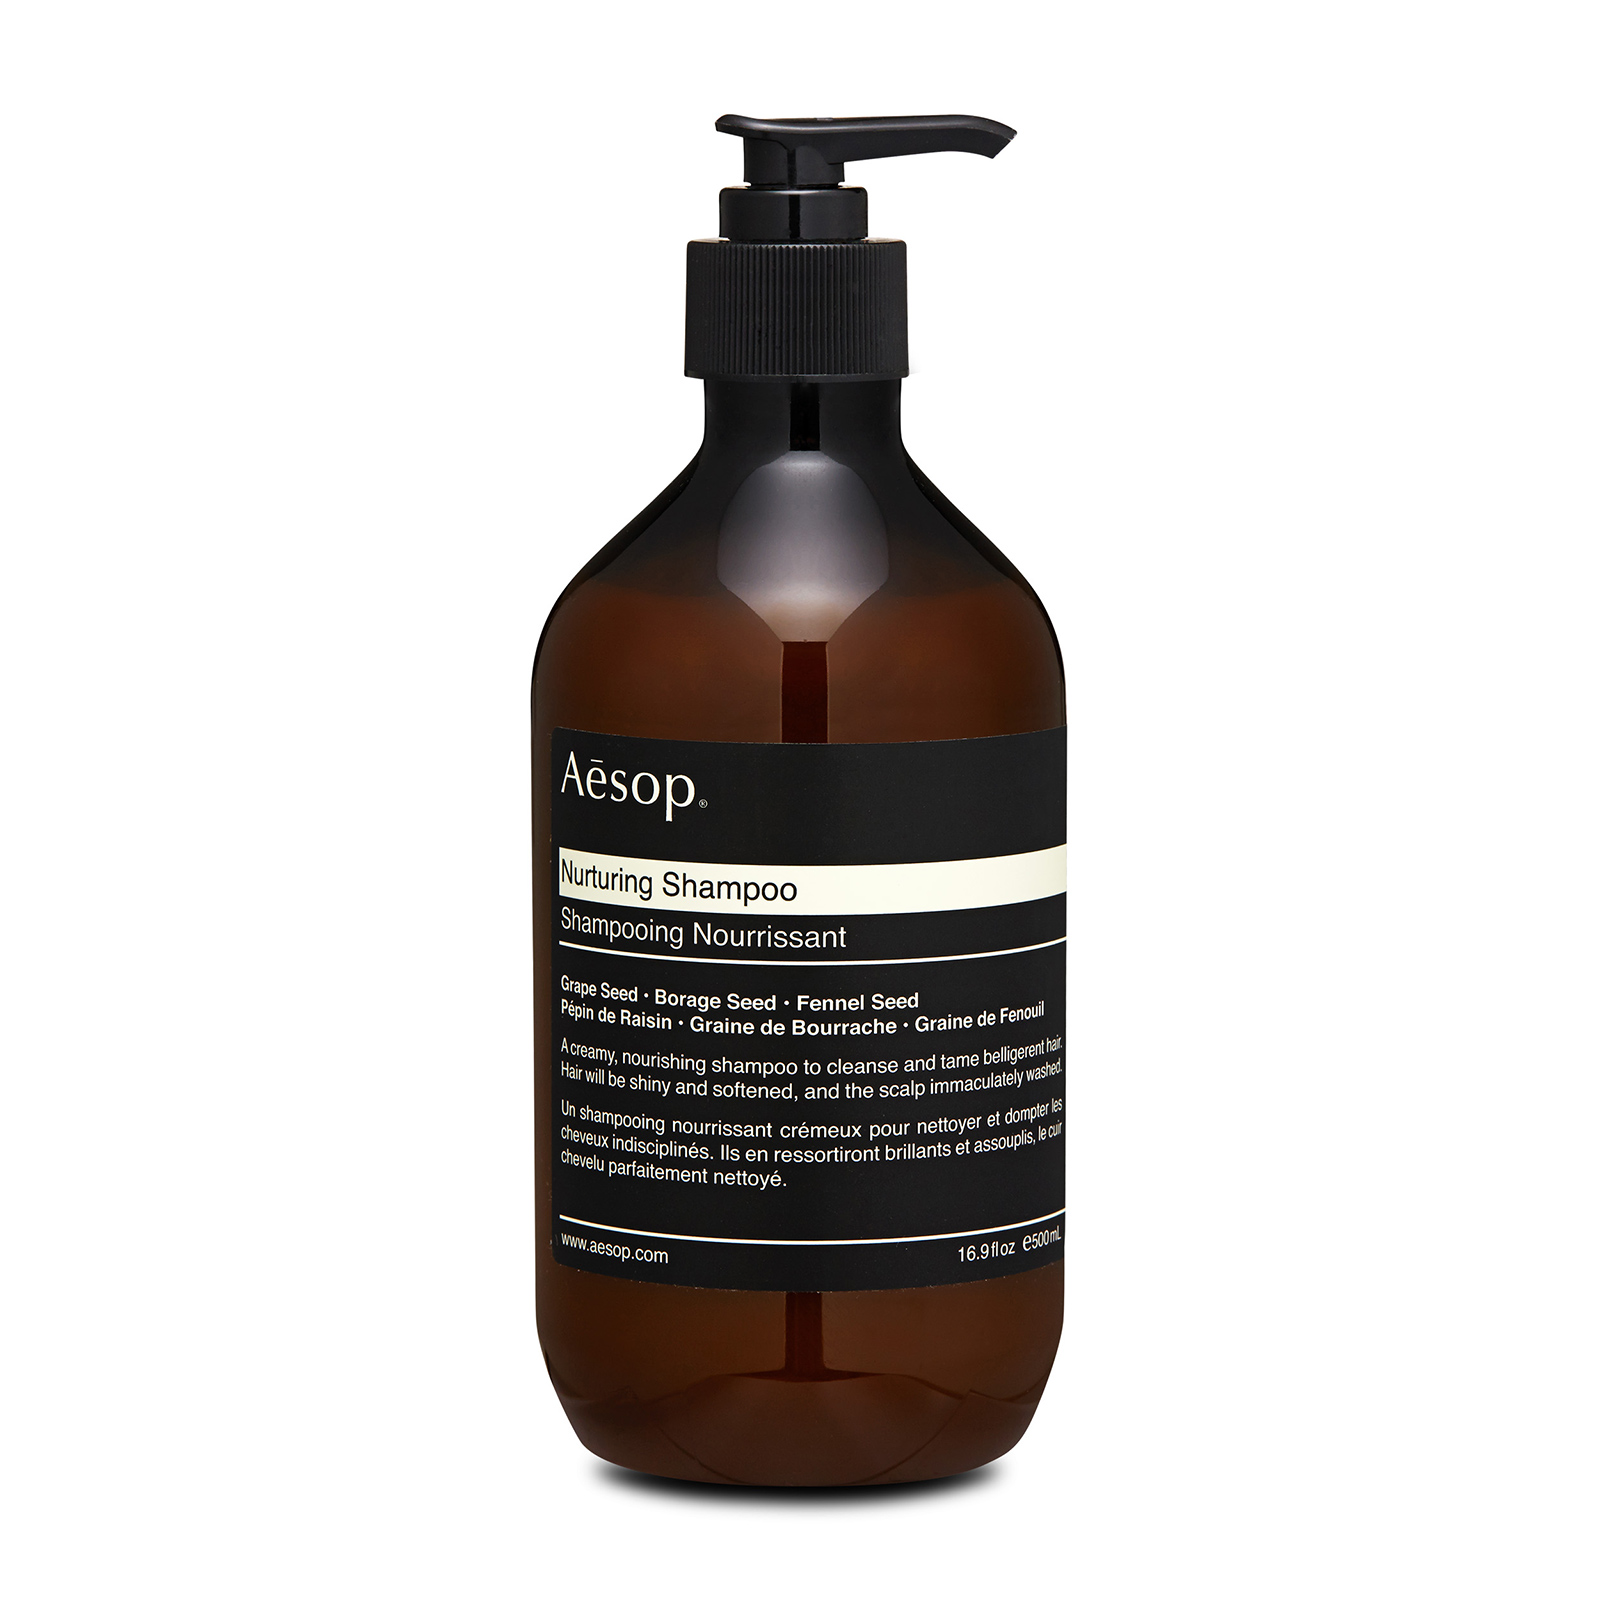 Aesop Nurturing Shampoo has the following features: Cleanses dry or damaged hair and leaves it glossy, moisturized and softened with a creamy foundation. Nourishes and tames belligerent hair without drying hair shafts or aggravating the scalp.Especially suited to dry or chemically treated hair. Also ideal for stressed or belligerent hair. Formulated with extracts of grape seed, borage seed and fennel seed to protects and nourishes your hair. Helps you to have a smooth, soft and shine hair.